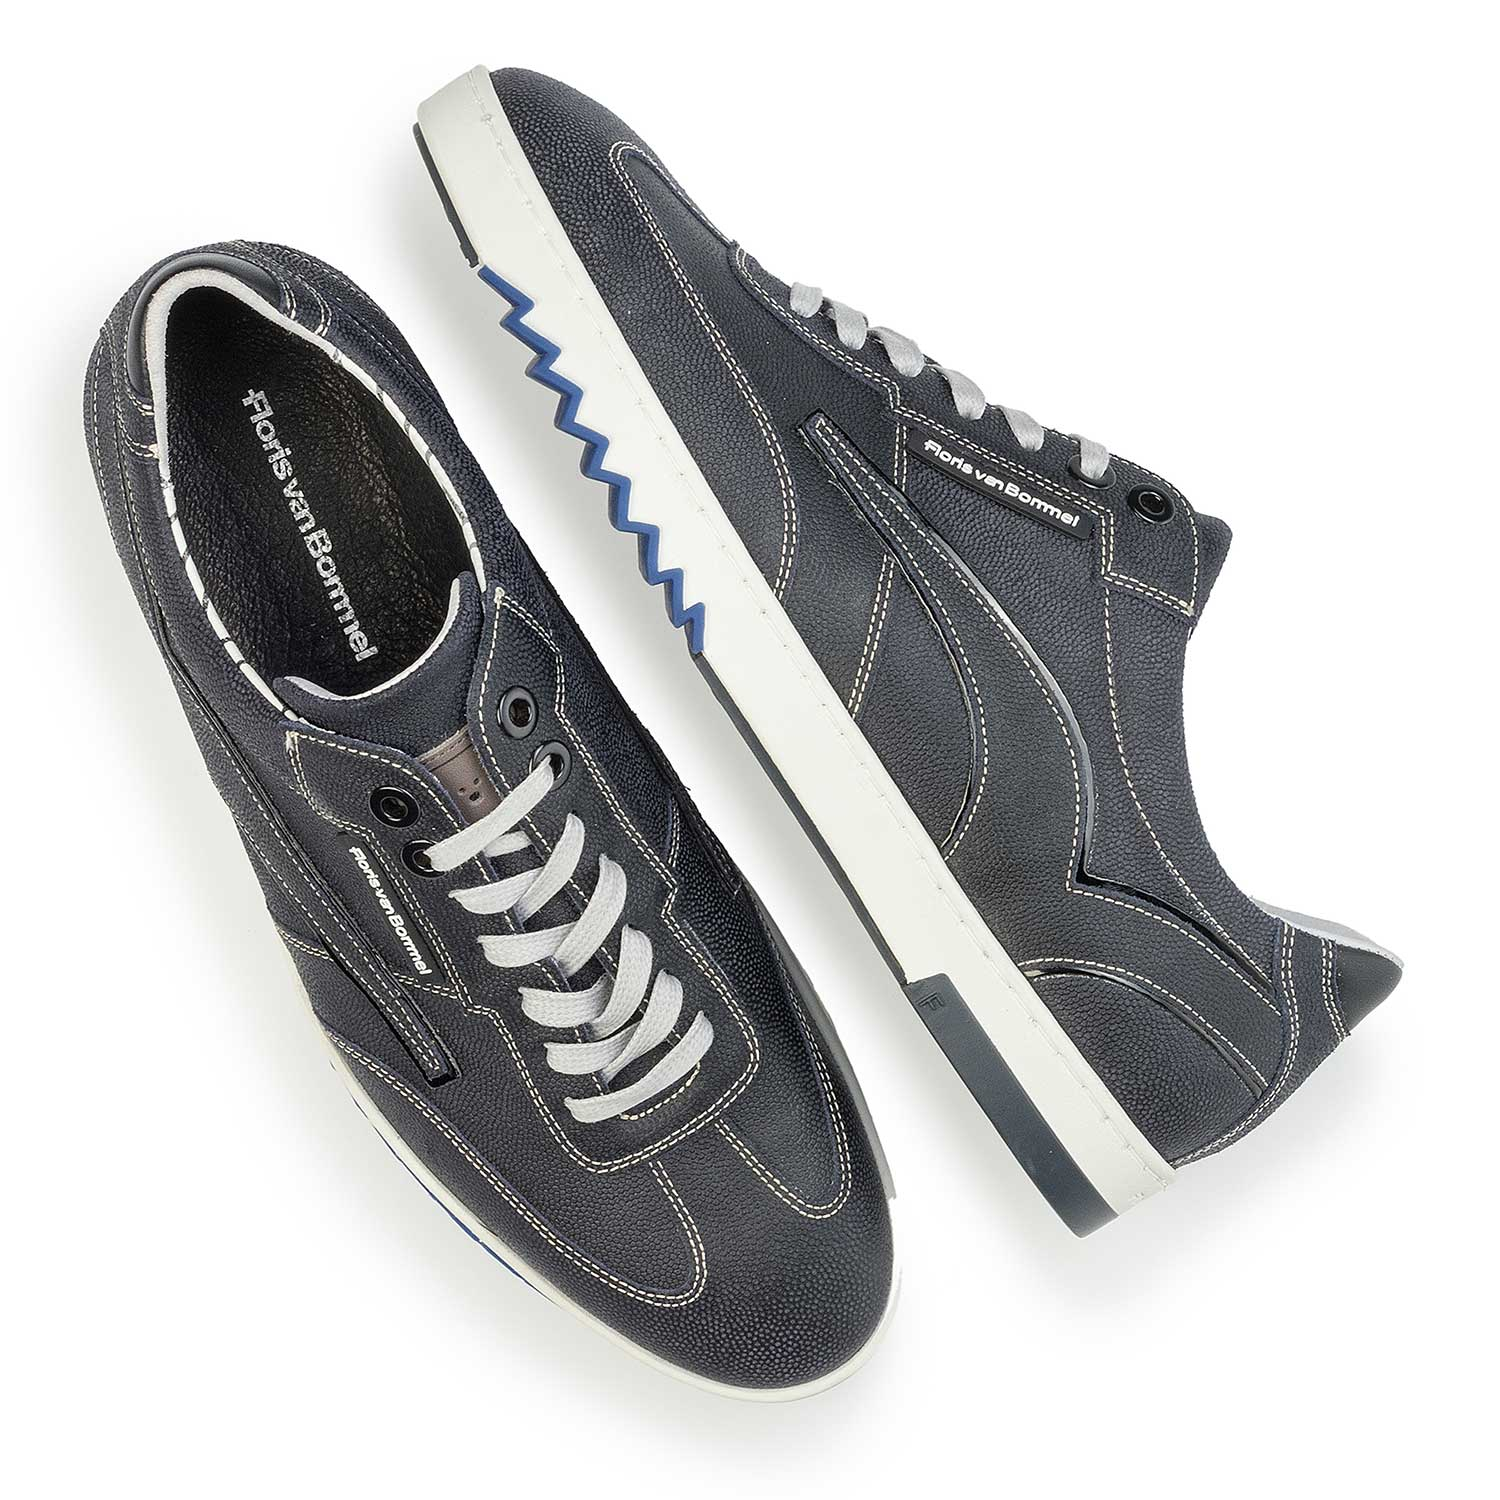 16074/27 - Dark blue patterned suede leather sneaker